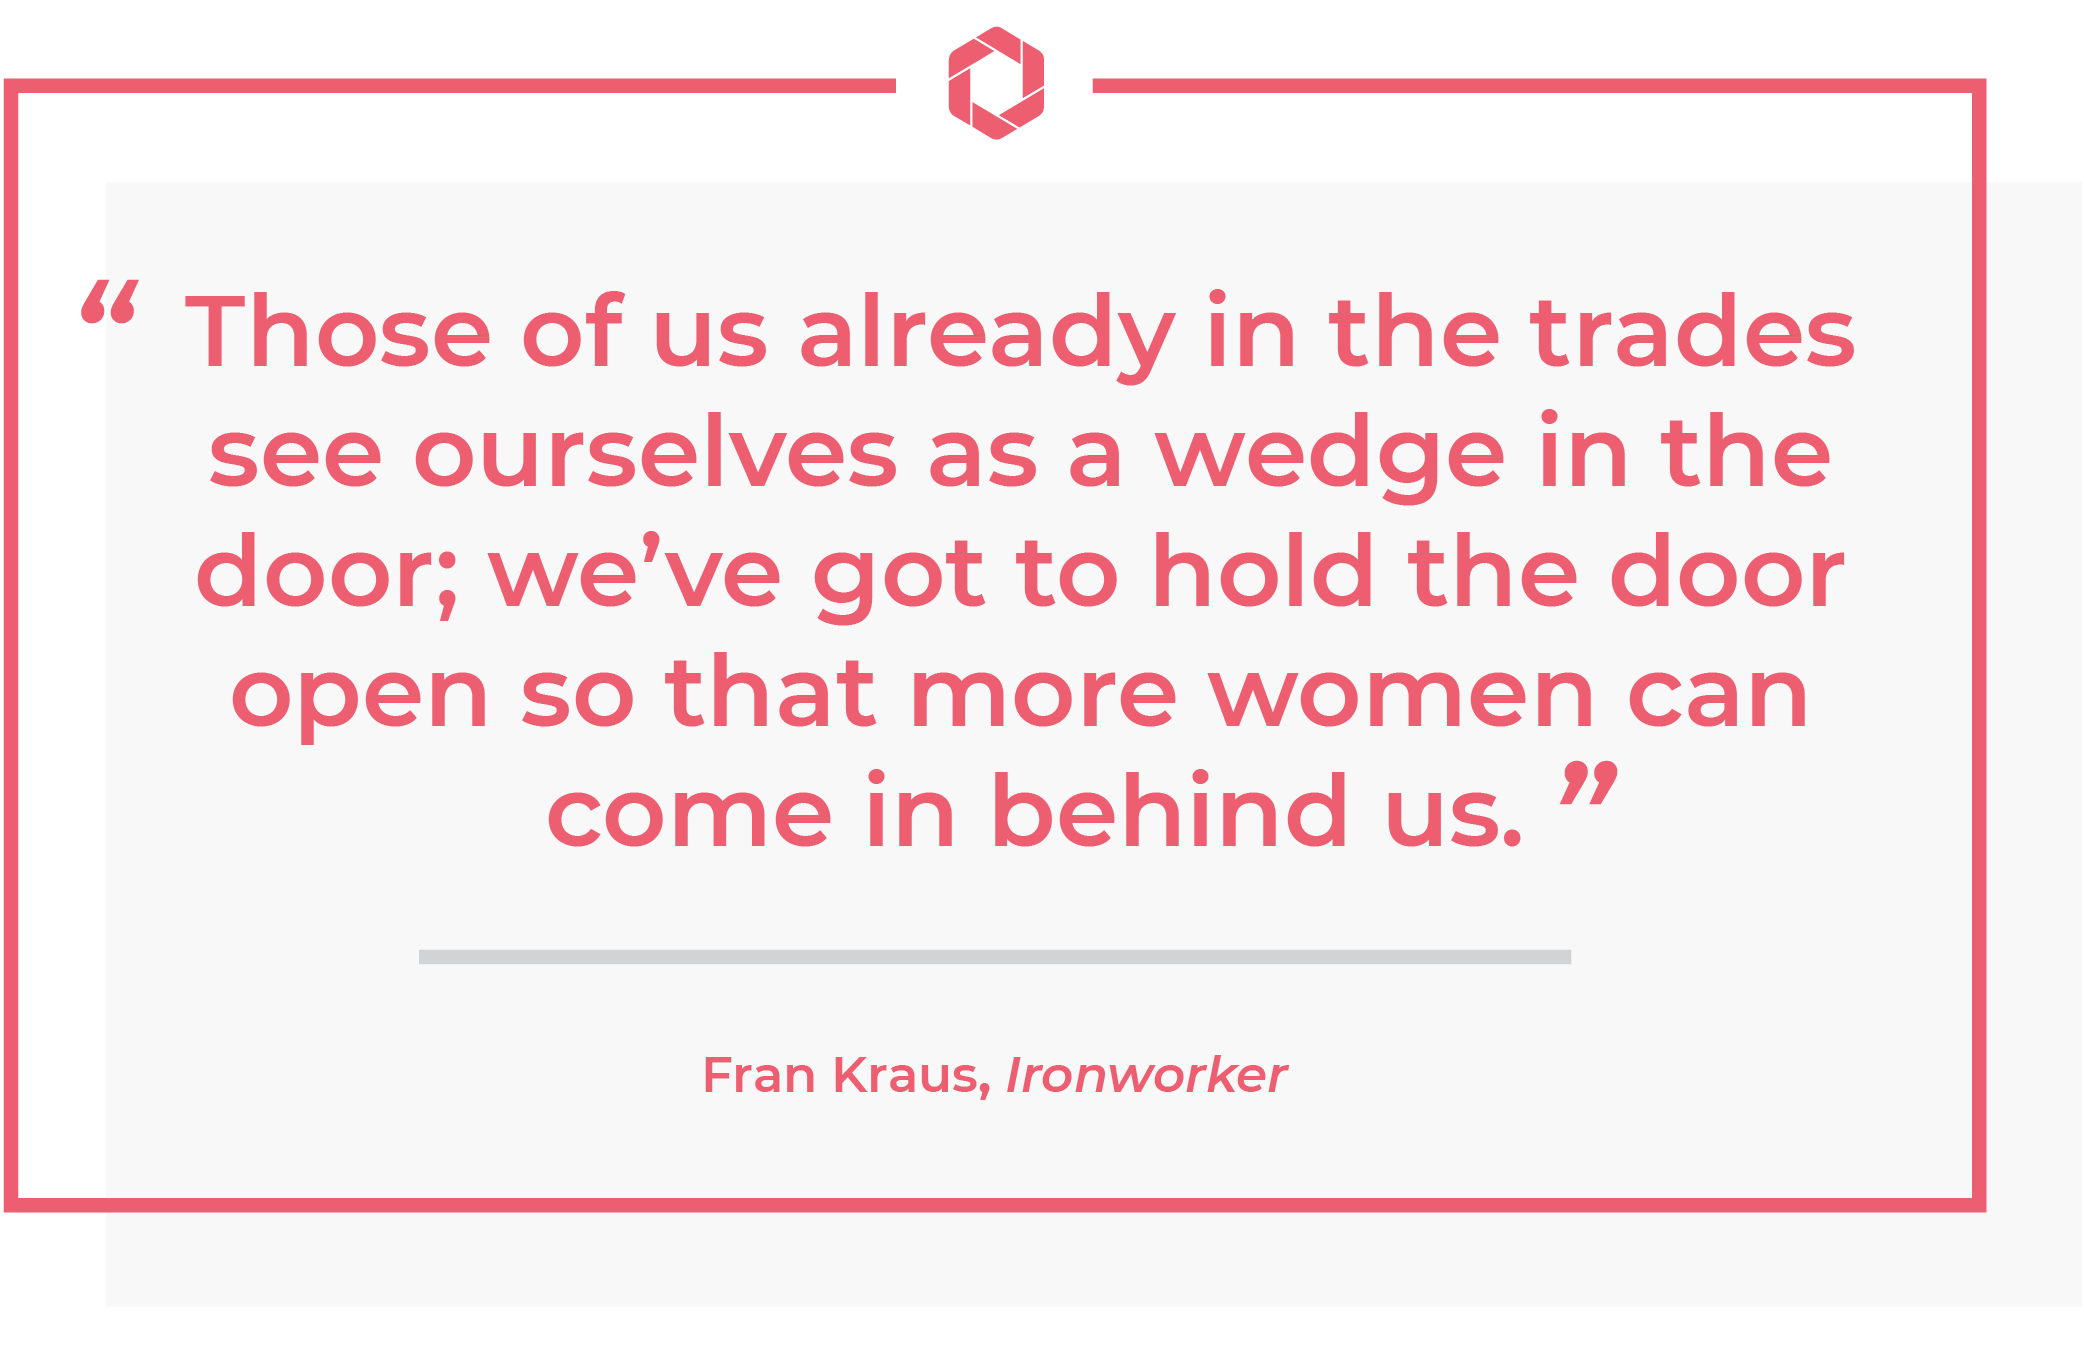 fran kraus quote women in skilled trades